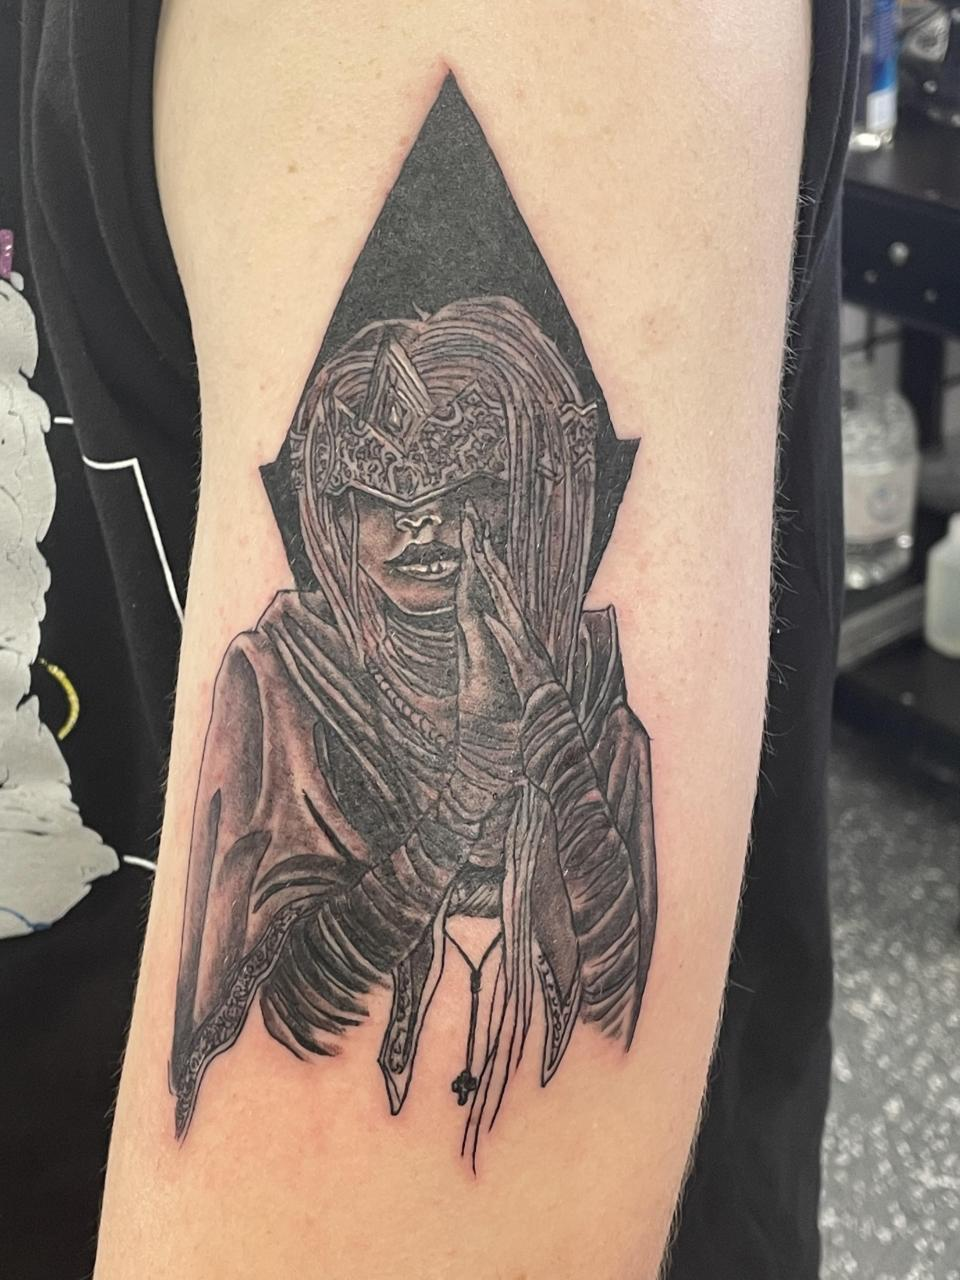 Got this design of the Dark Souls Firekeeper on my arm 30 minutes ago